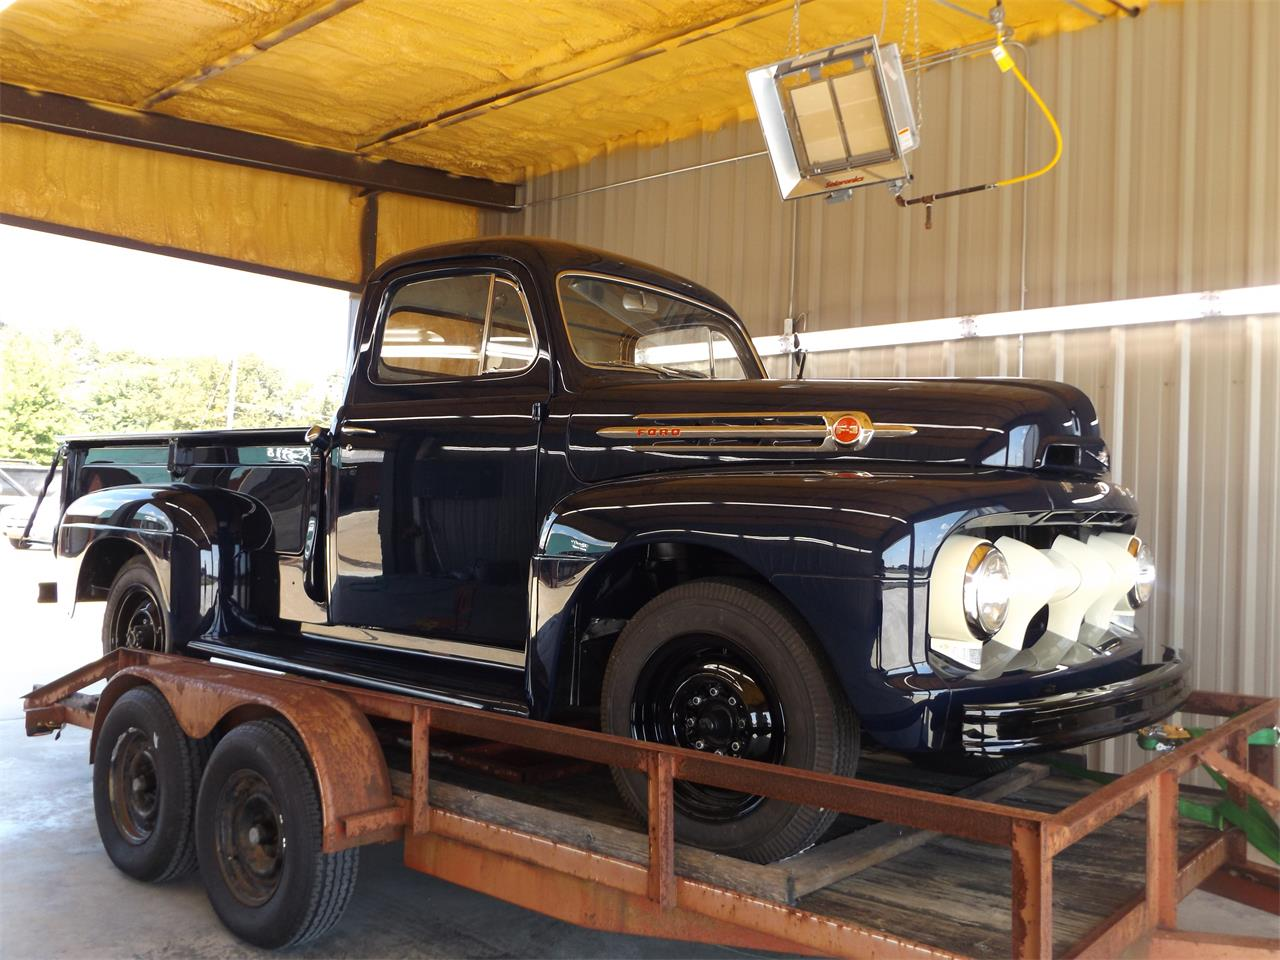 Large Picture of '52 Ford Truck located in Tennessee Offered by a Private Seller - LHM3